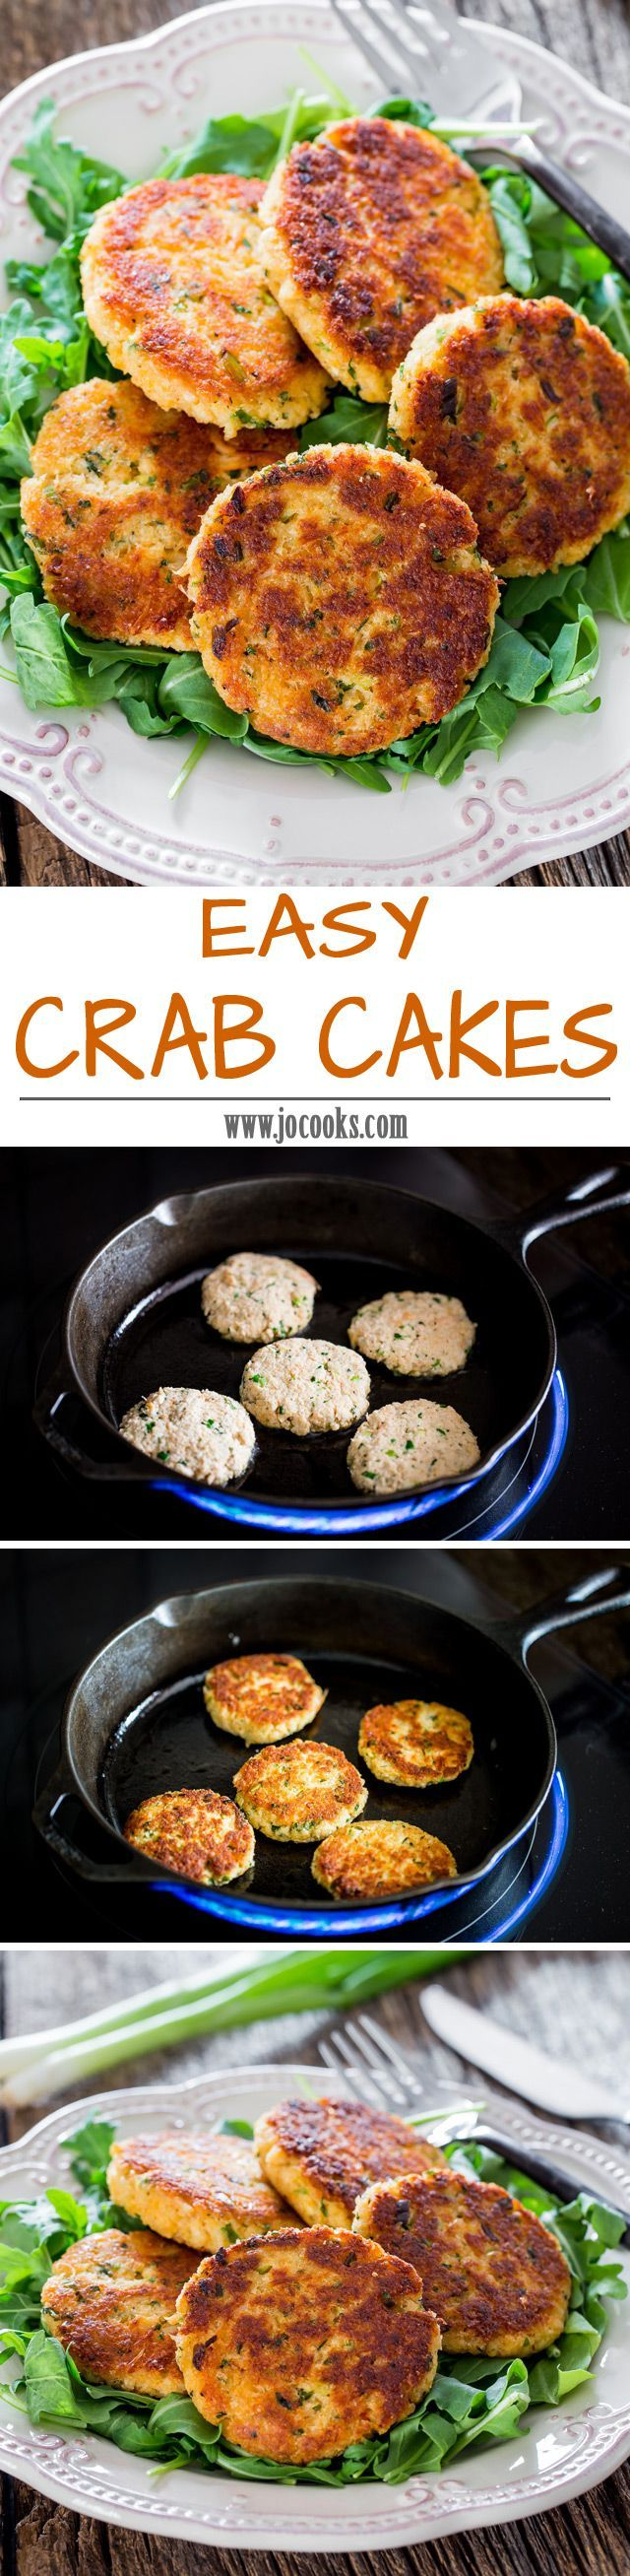 Easy Crab Cakes - these succulent pan-fried crab cakes are fast, easy and delicious and won't crumble.